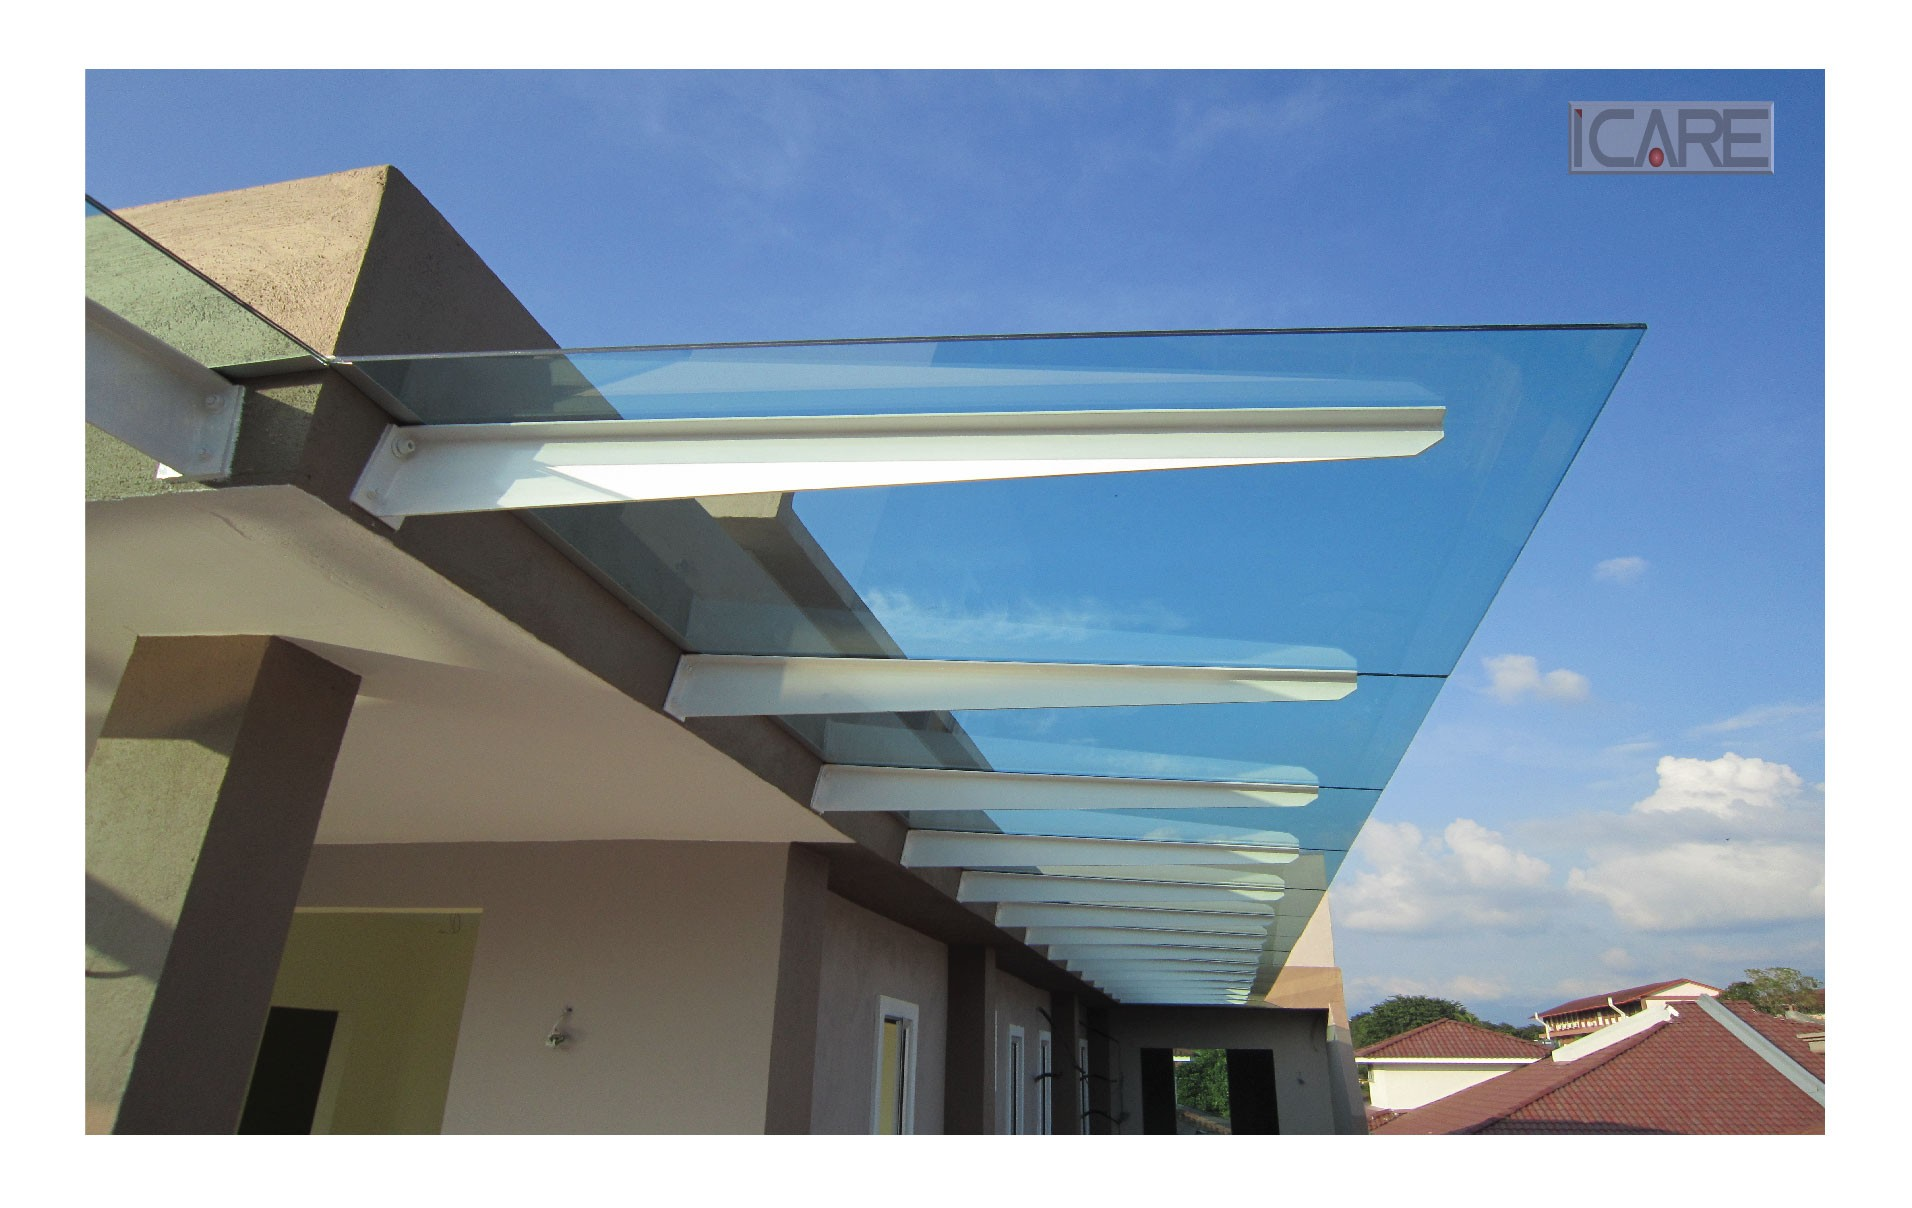 Awning polycarbonate renof gallery for Glass roof design